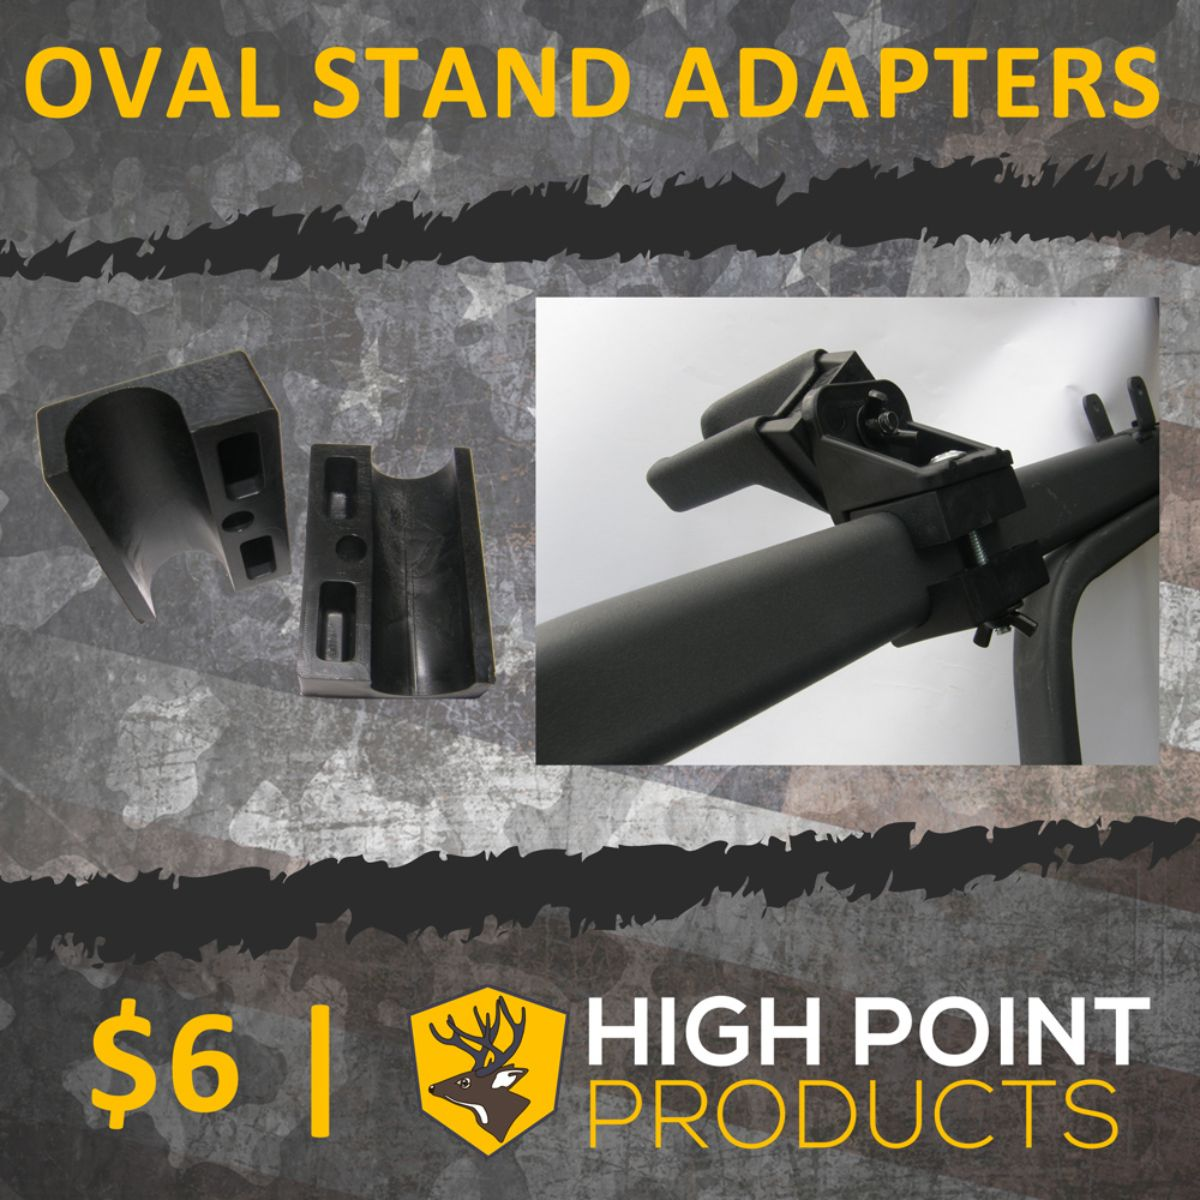 Oval Tree Stand Adapters